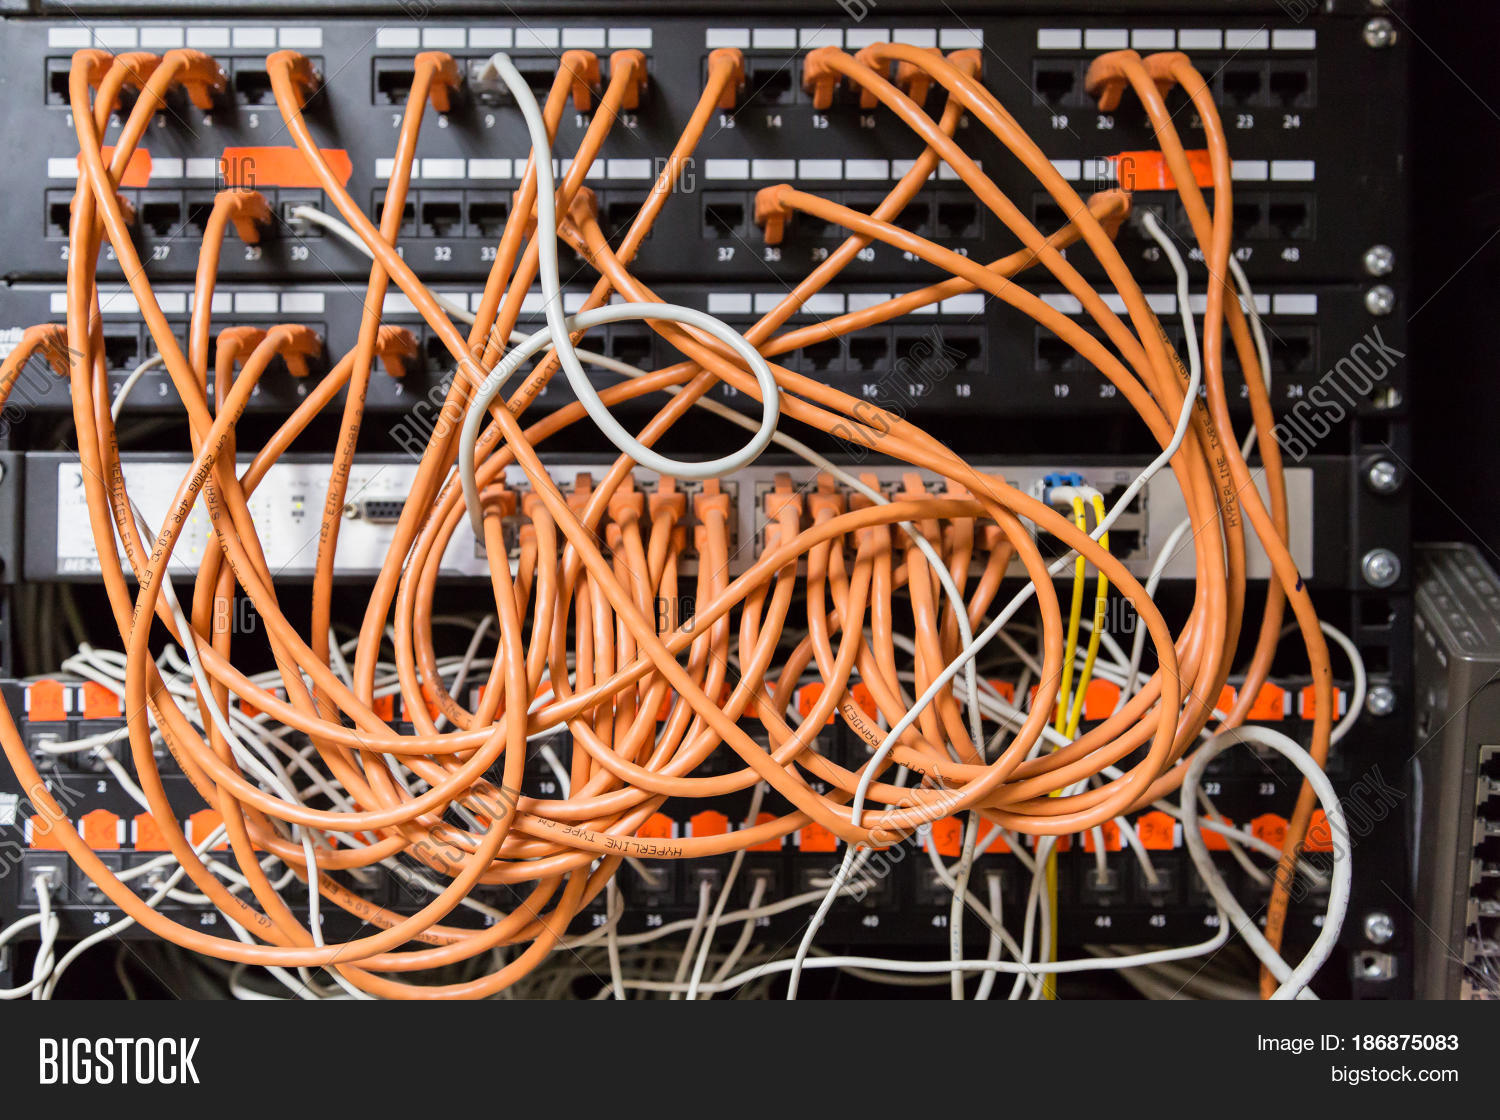 Stupendous Box Wires Cables Image Photo Free Trial Bigstock Wiring 101 Capemaxxcnl